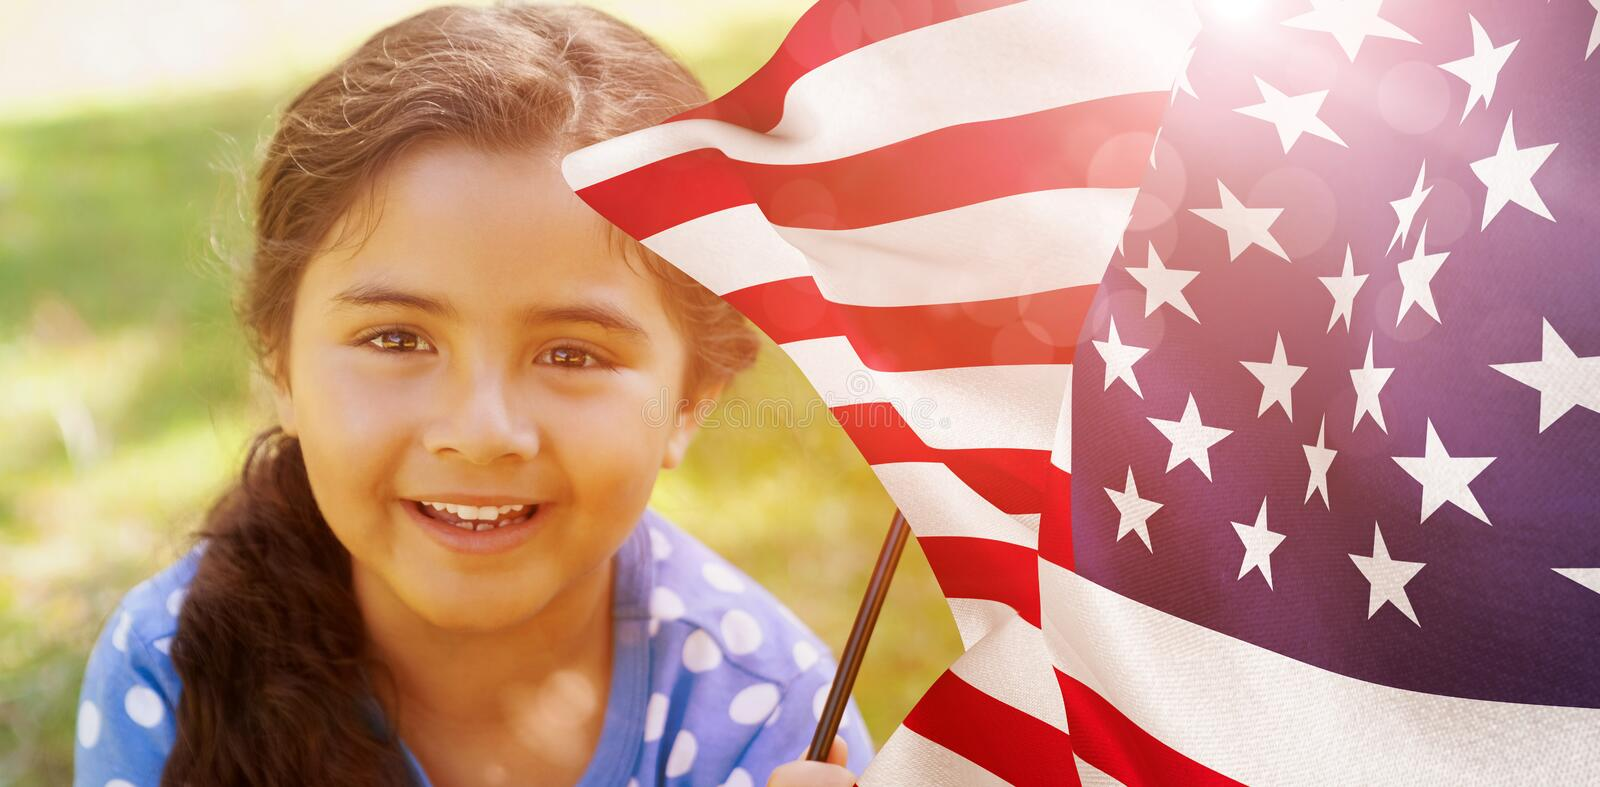 Composite image of portrait of girl with american flag royalty free stock photos